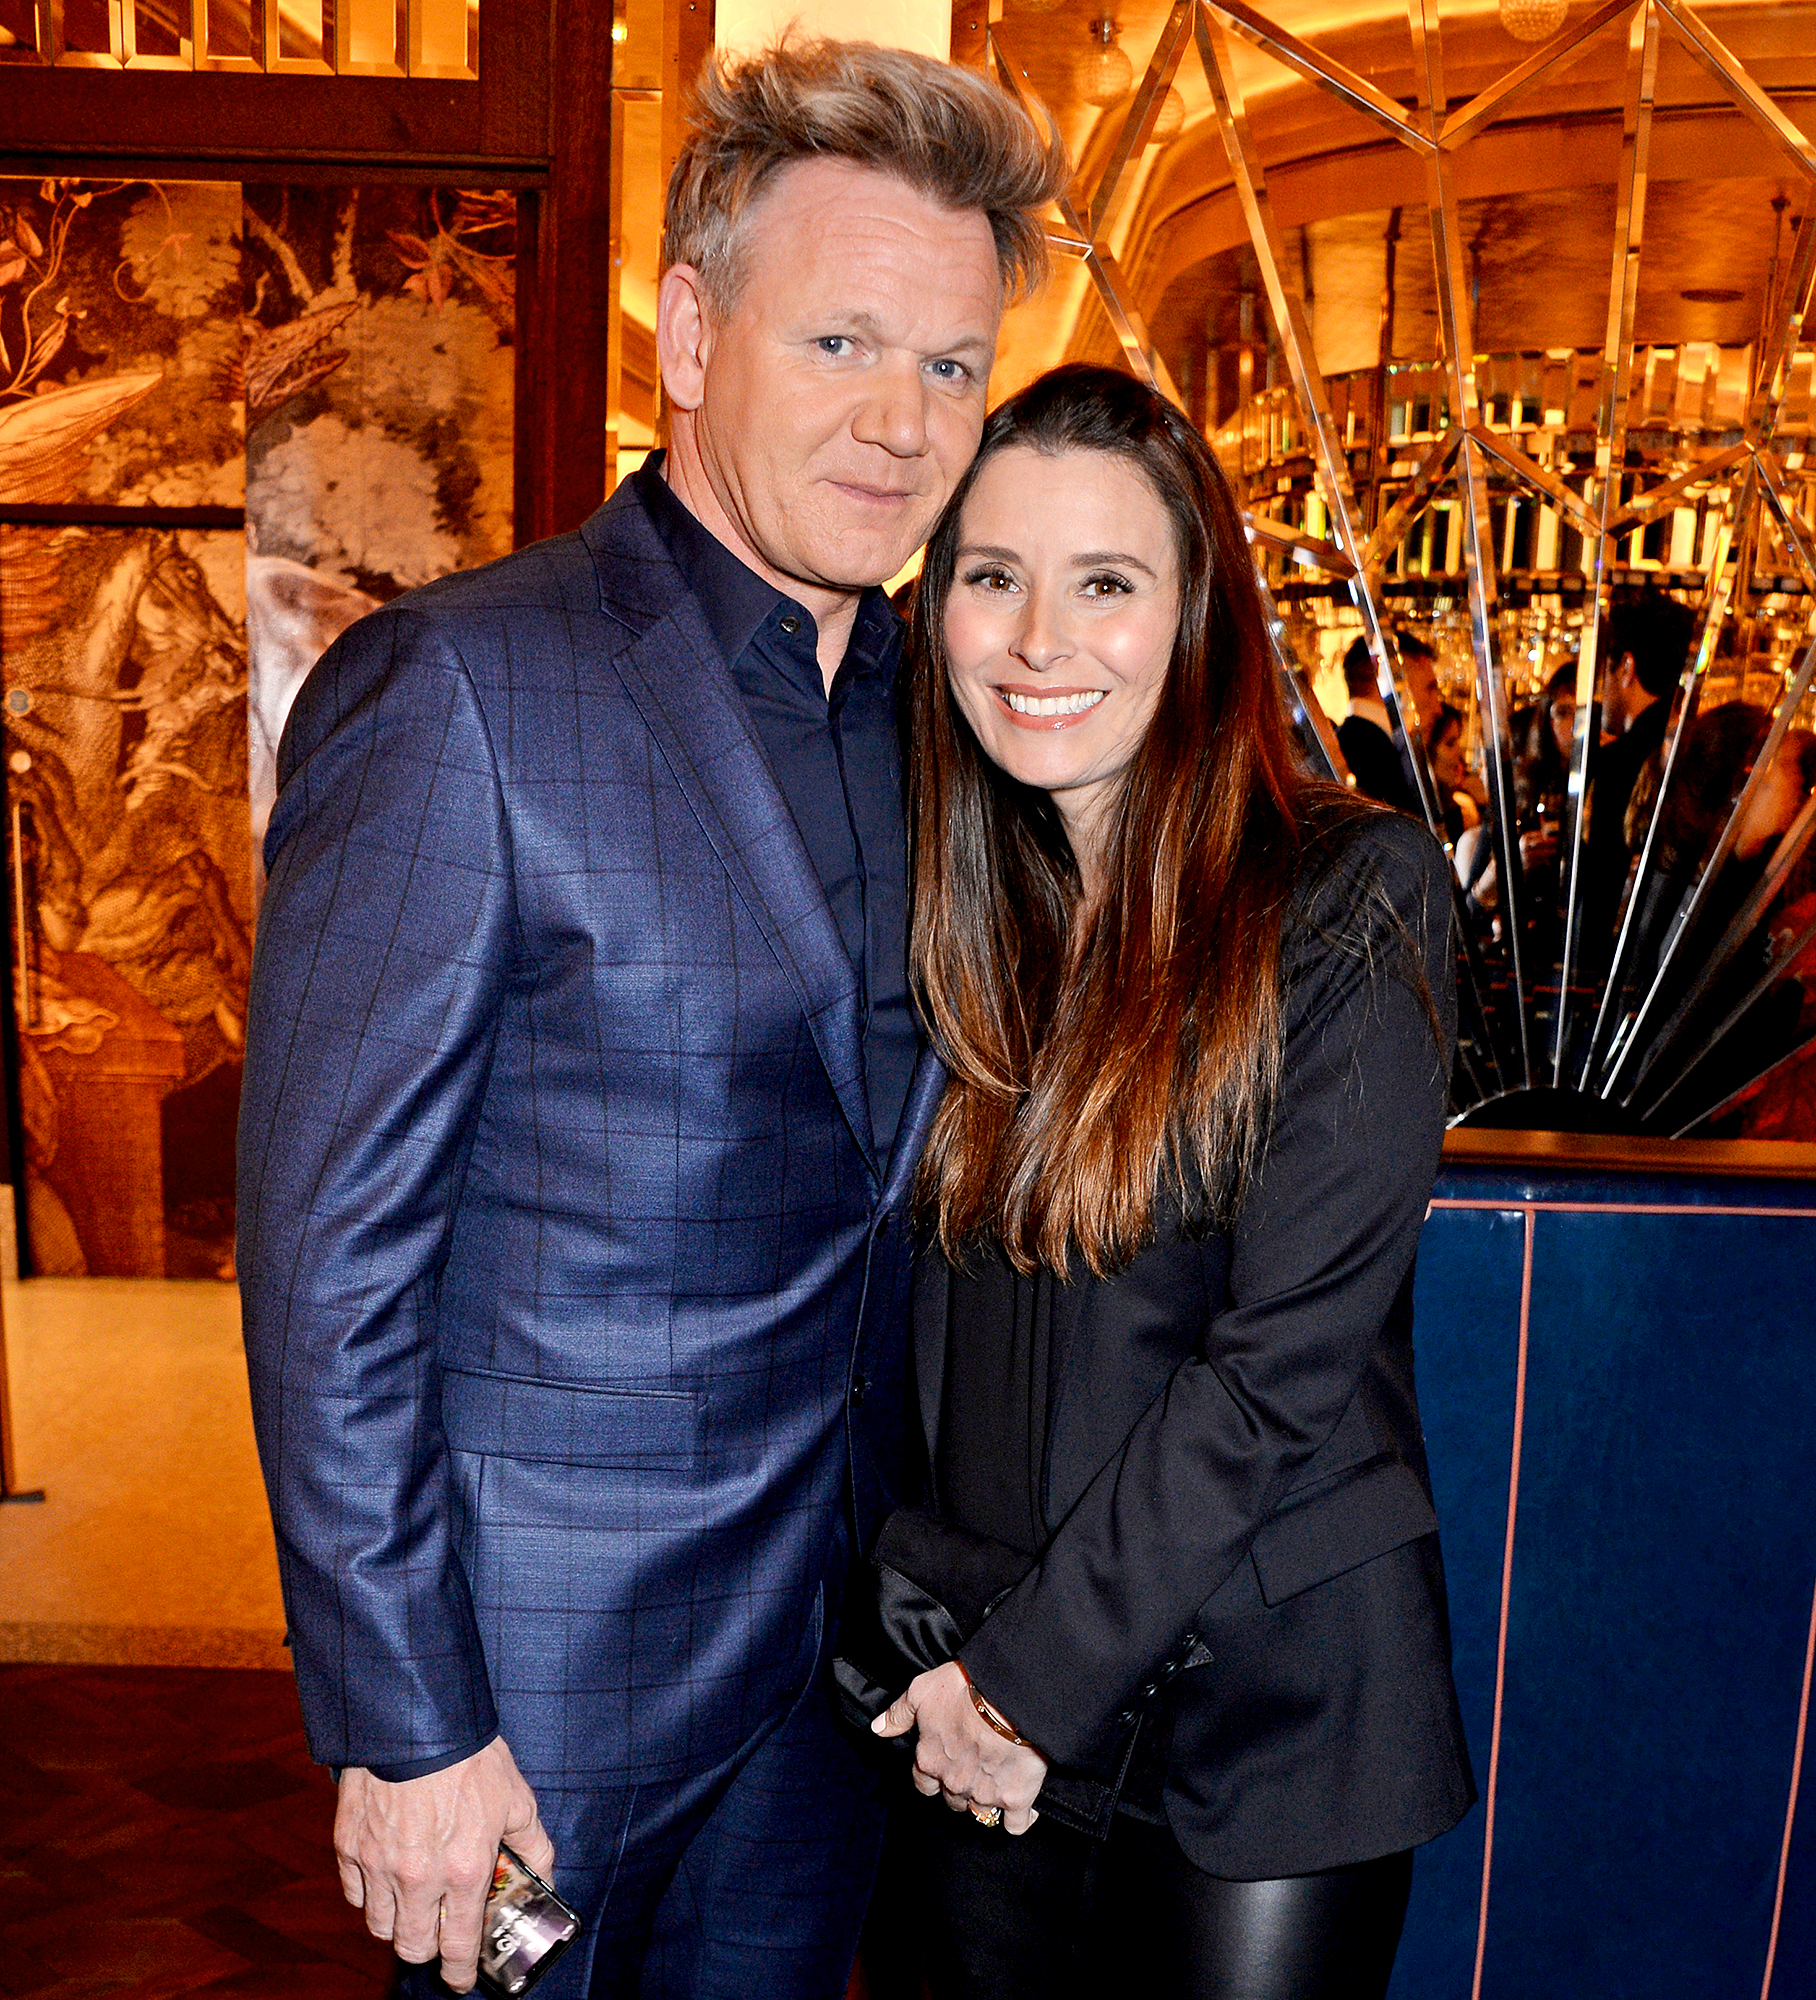 Gordon-Ramsay-and-Tana-Ramsay-give-birth - Gordon Ramsay and Tana Ramsay attend the GQ dinner hosted by Dylan Jones and David Beckham to celebrate London Fashion Week Men's January 2019 at Brasserie Of Light in Selfridges on January 7, 2019 in London, England.